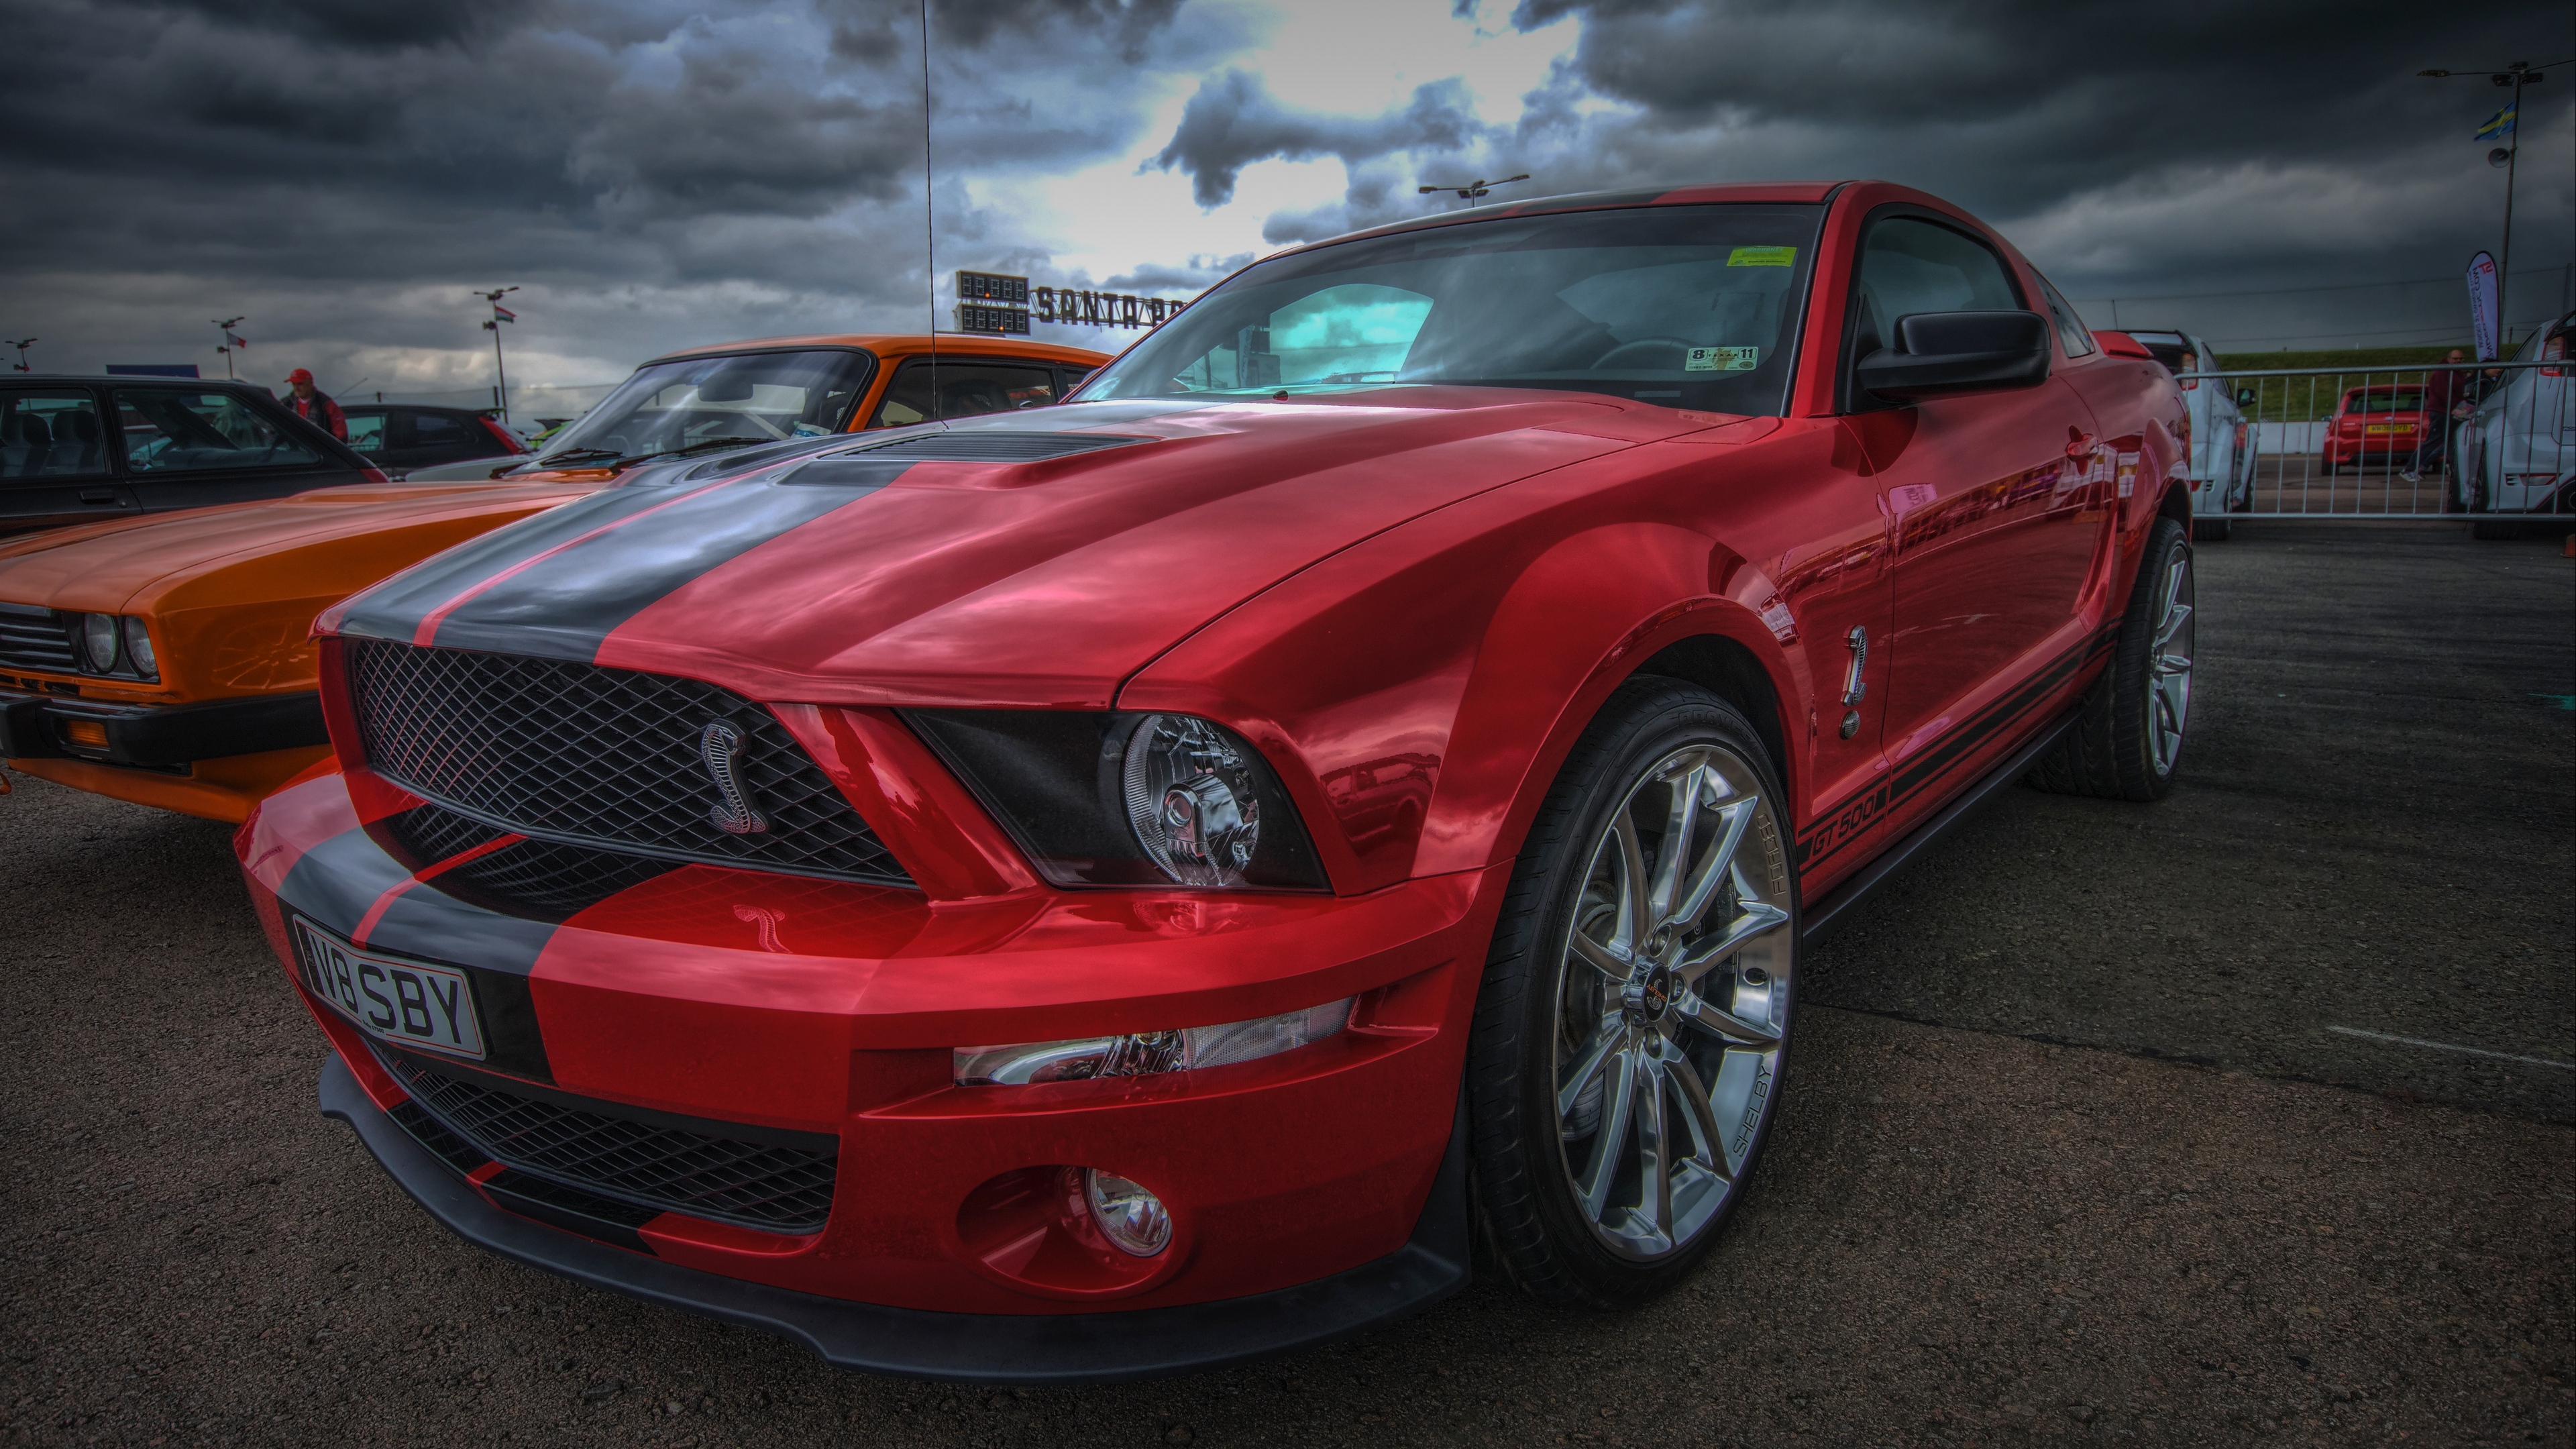 ford mustang shelby gt500, ford mustang, red, sports car ...